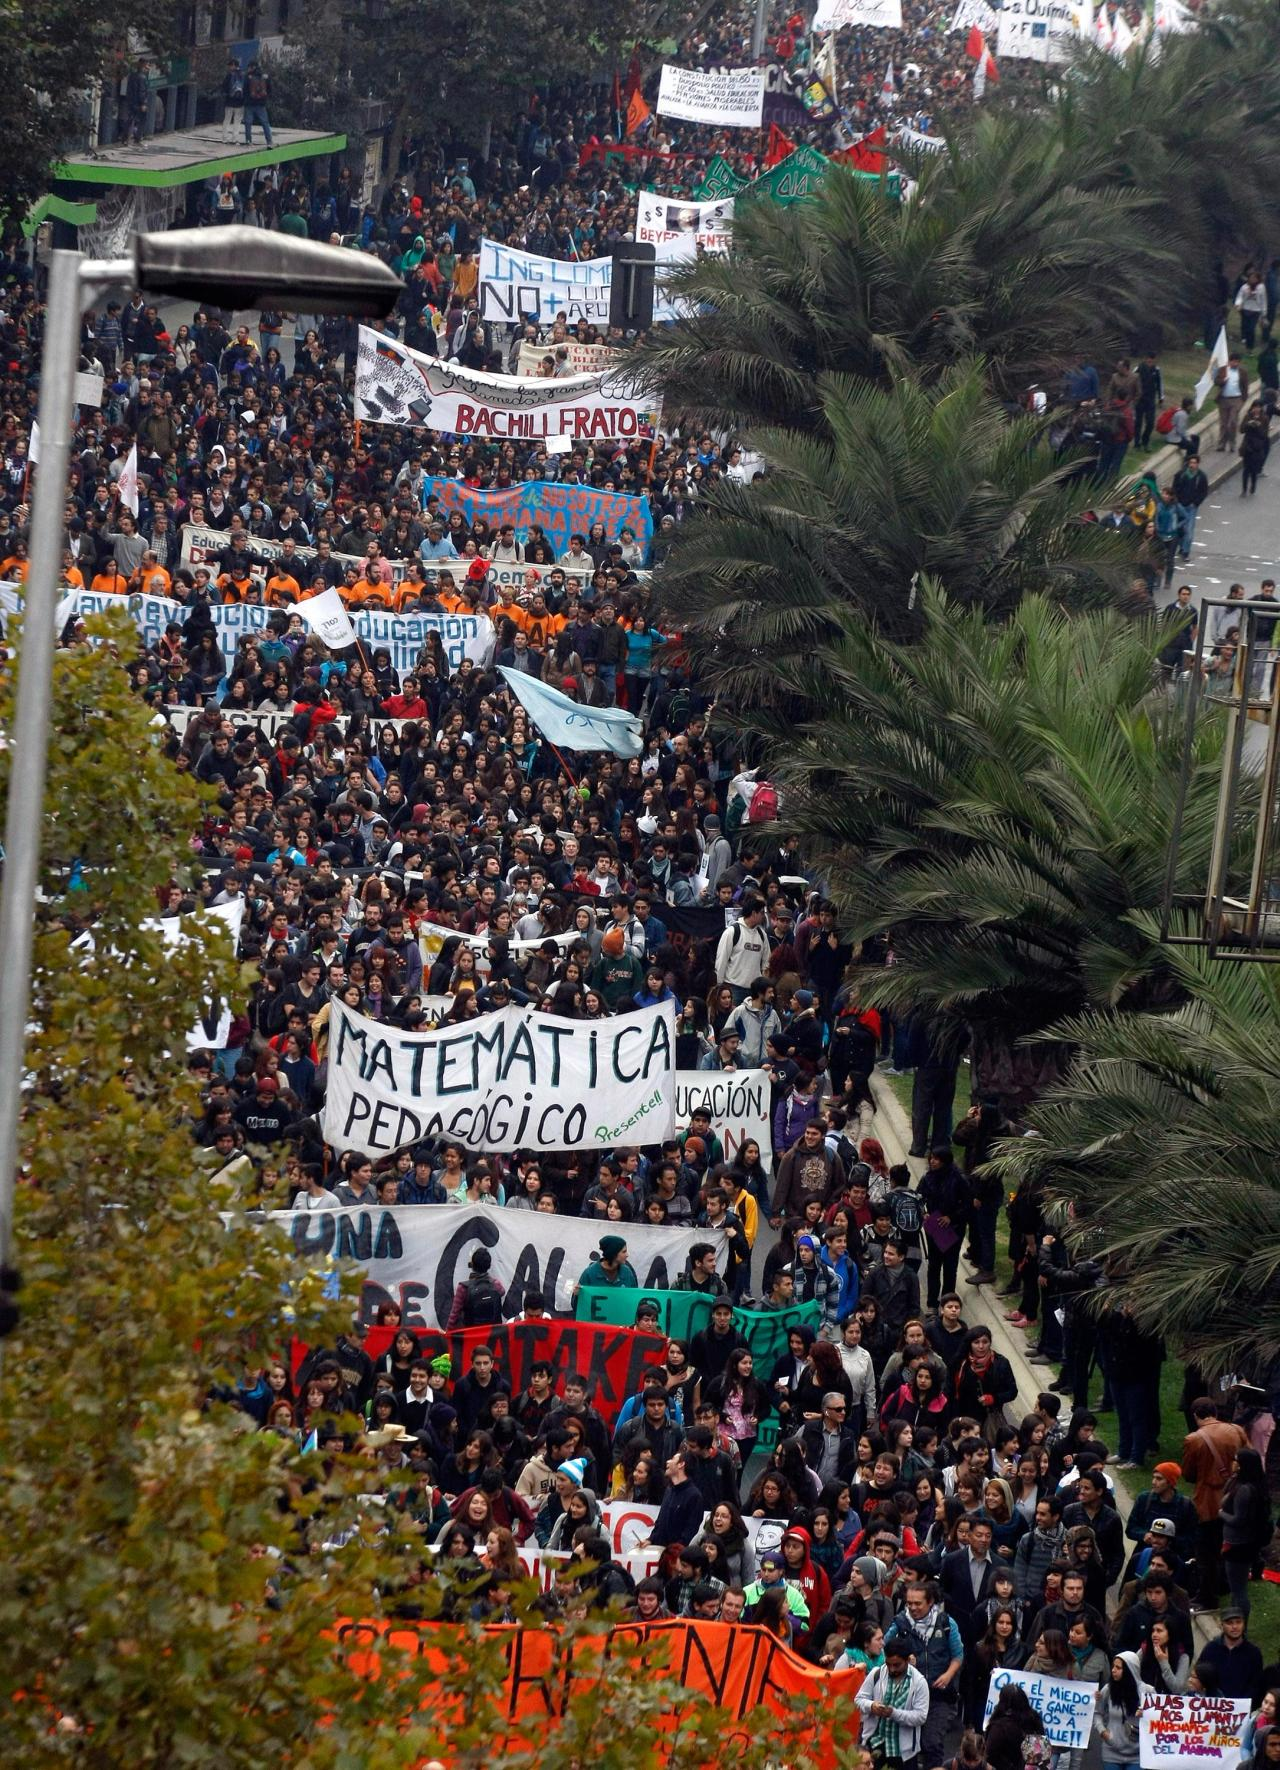 anarcho-queer:  100,000+ Students Protest In Chile For Free & Fair Education Students in Chile have resumed their protests for education reforms, with more than 100,000 people taking to the streets of the country. In the capital, Santiago, riot police fired tear gas and water cannon to break up the march, after being targeted by hooded protesters. Eight officers were injured and 109 people detained, authorities say. Students say Chile's education system, traditionally viewed as the best in Latin America, is profoundly unfair. They say middle-class students have access to some of the best schooling in Latin America, while the poor have to be content with under-funded state schools. Local media say the massive turn-out in Santiago puts the first big march of the year among the largest in the last two decades. Students have been campaigning for about two years, but this was the first nationwide protest in 2013.